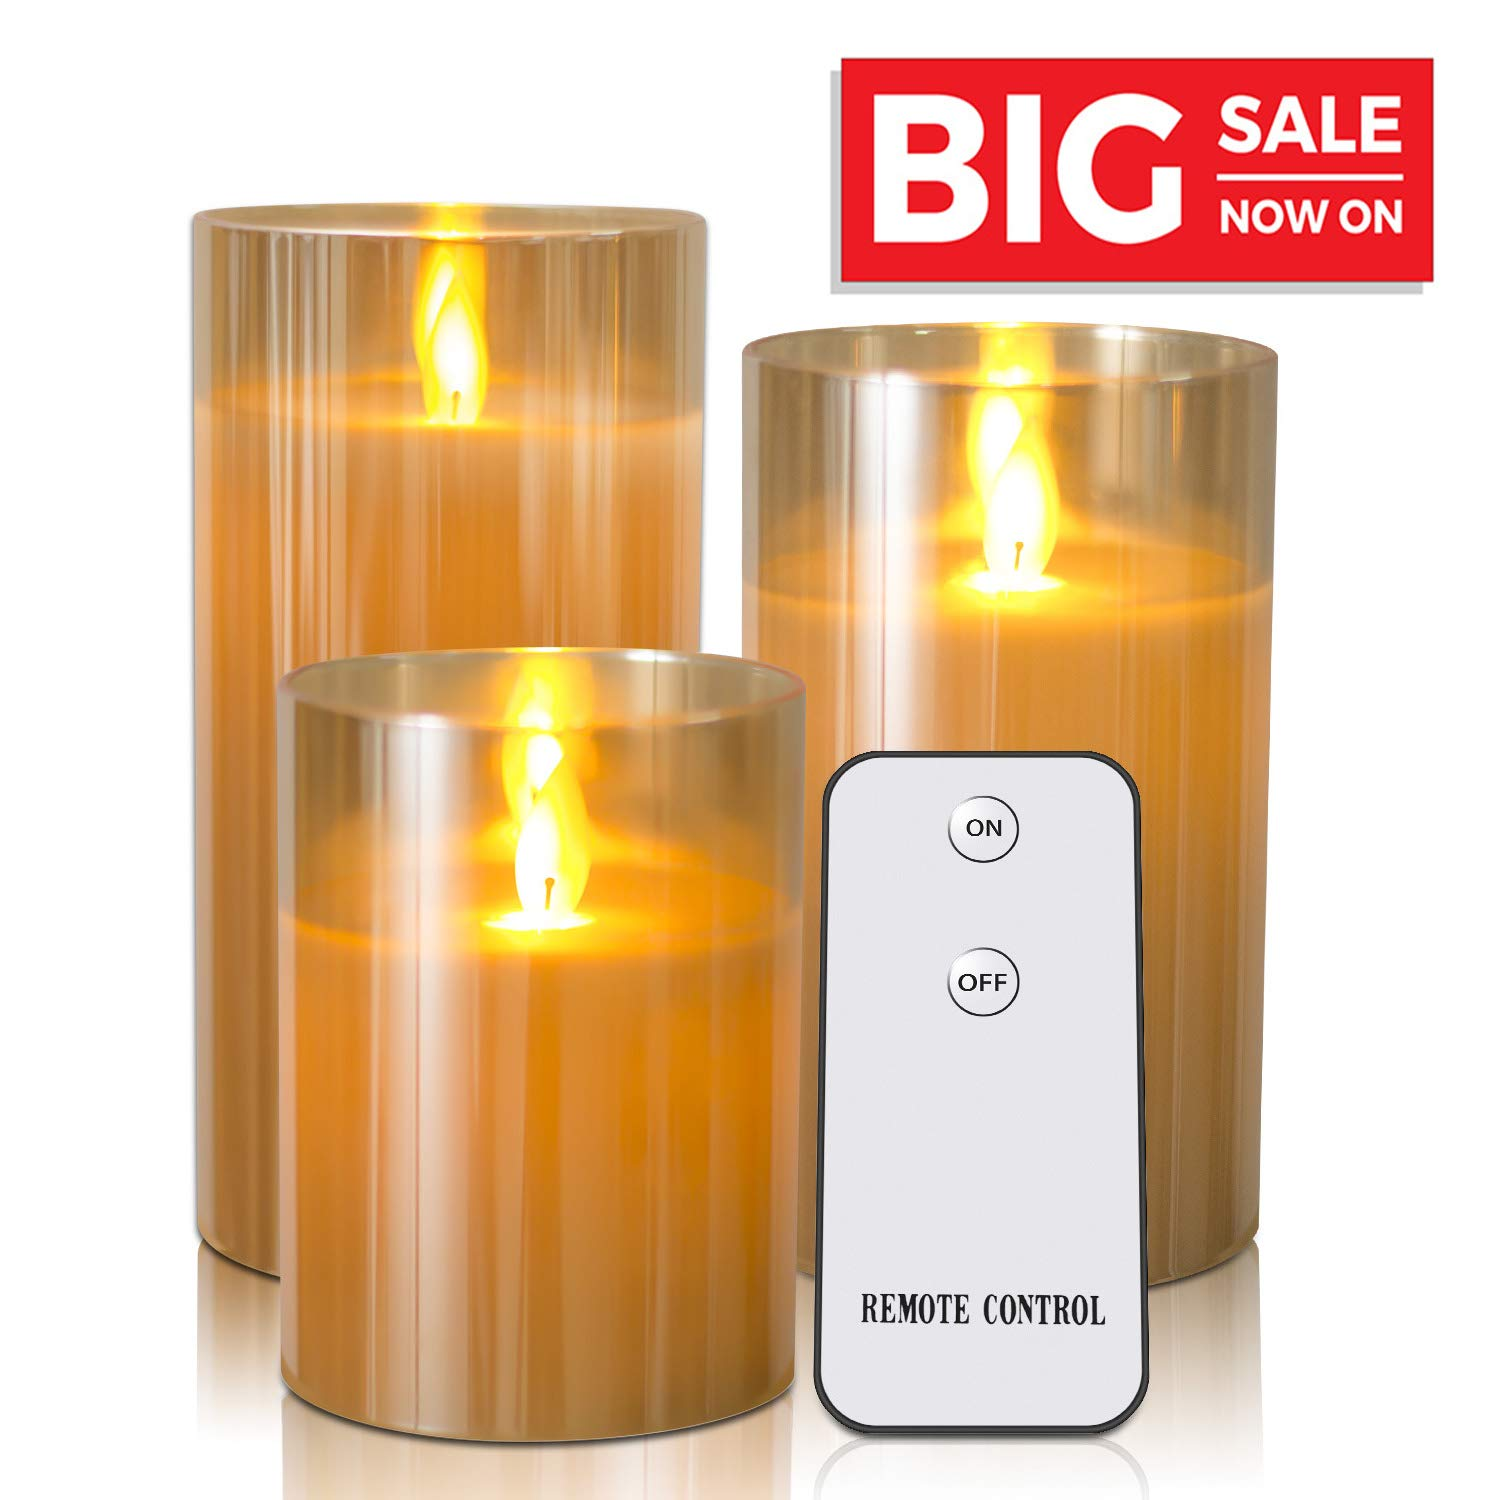 Flameless Candles Flickering With Remote Timers - Kithouse LED Candles Battery Operated Electric Candles - 4'' 5'' 6'' Real Wax Not Plastic Pillar Candles, Set Of 3